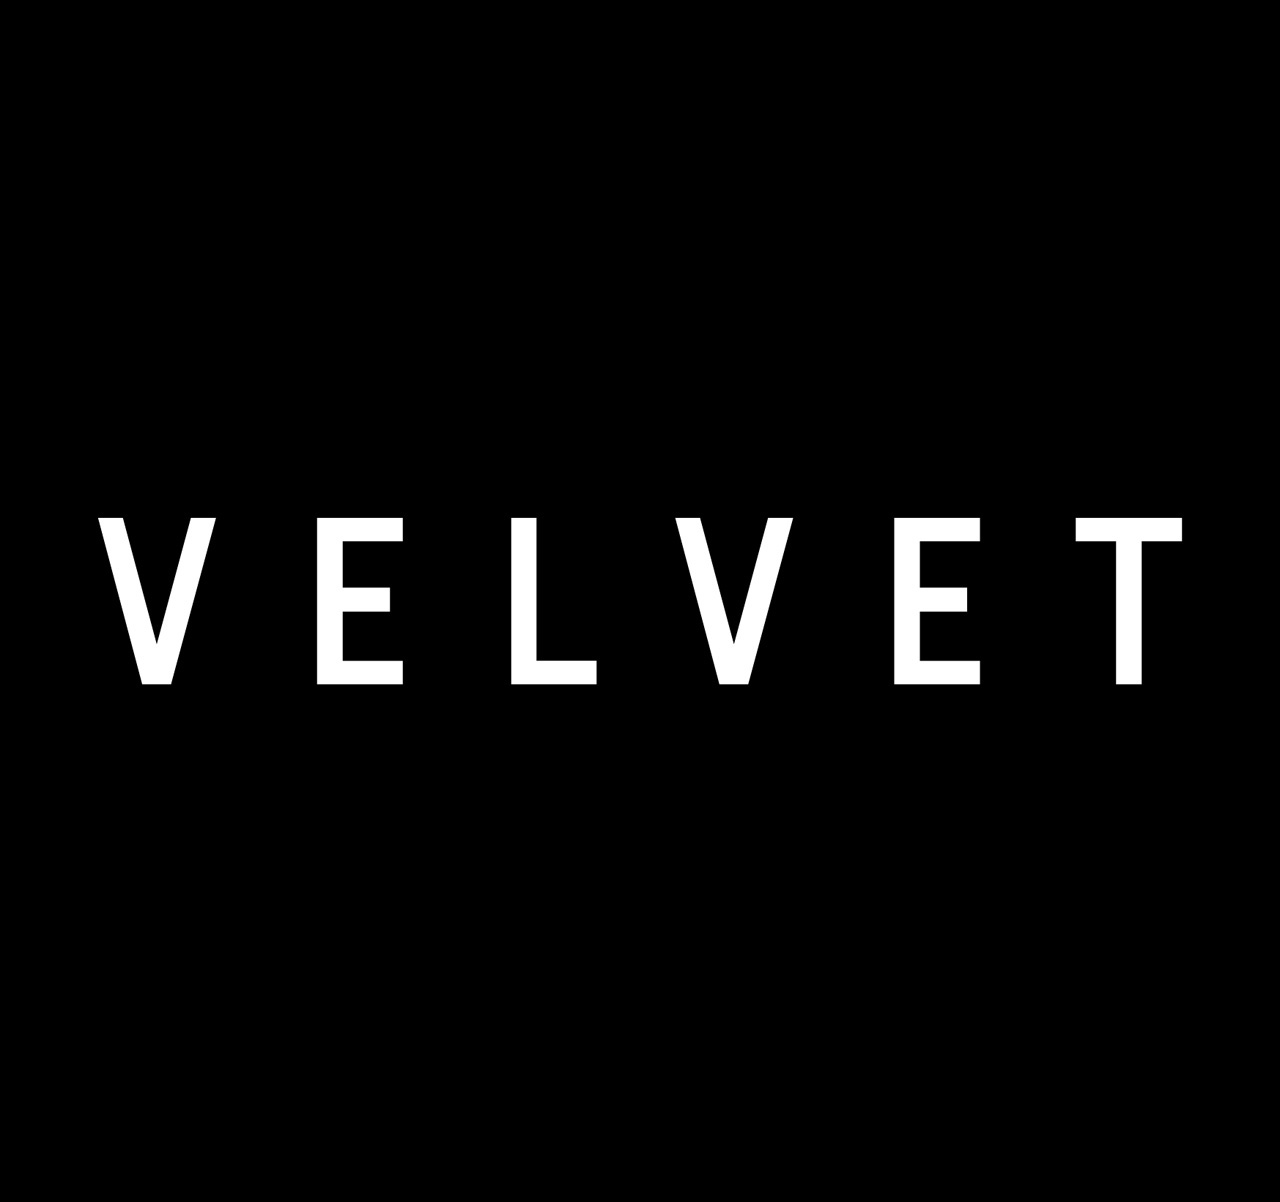 davislam.com_velvet-logo_white-on-black.jpg